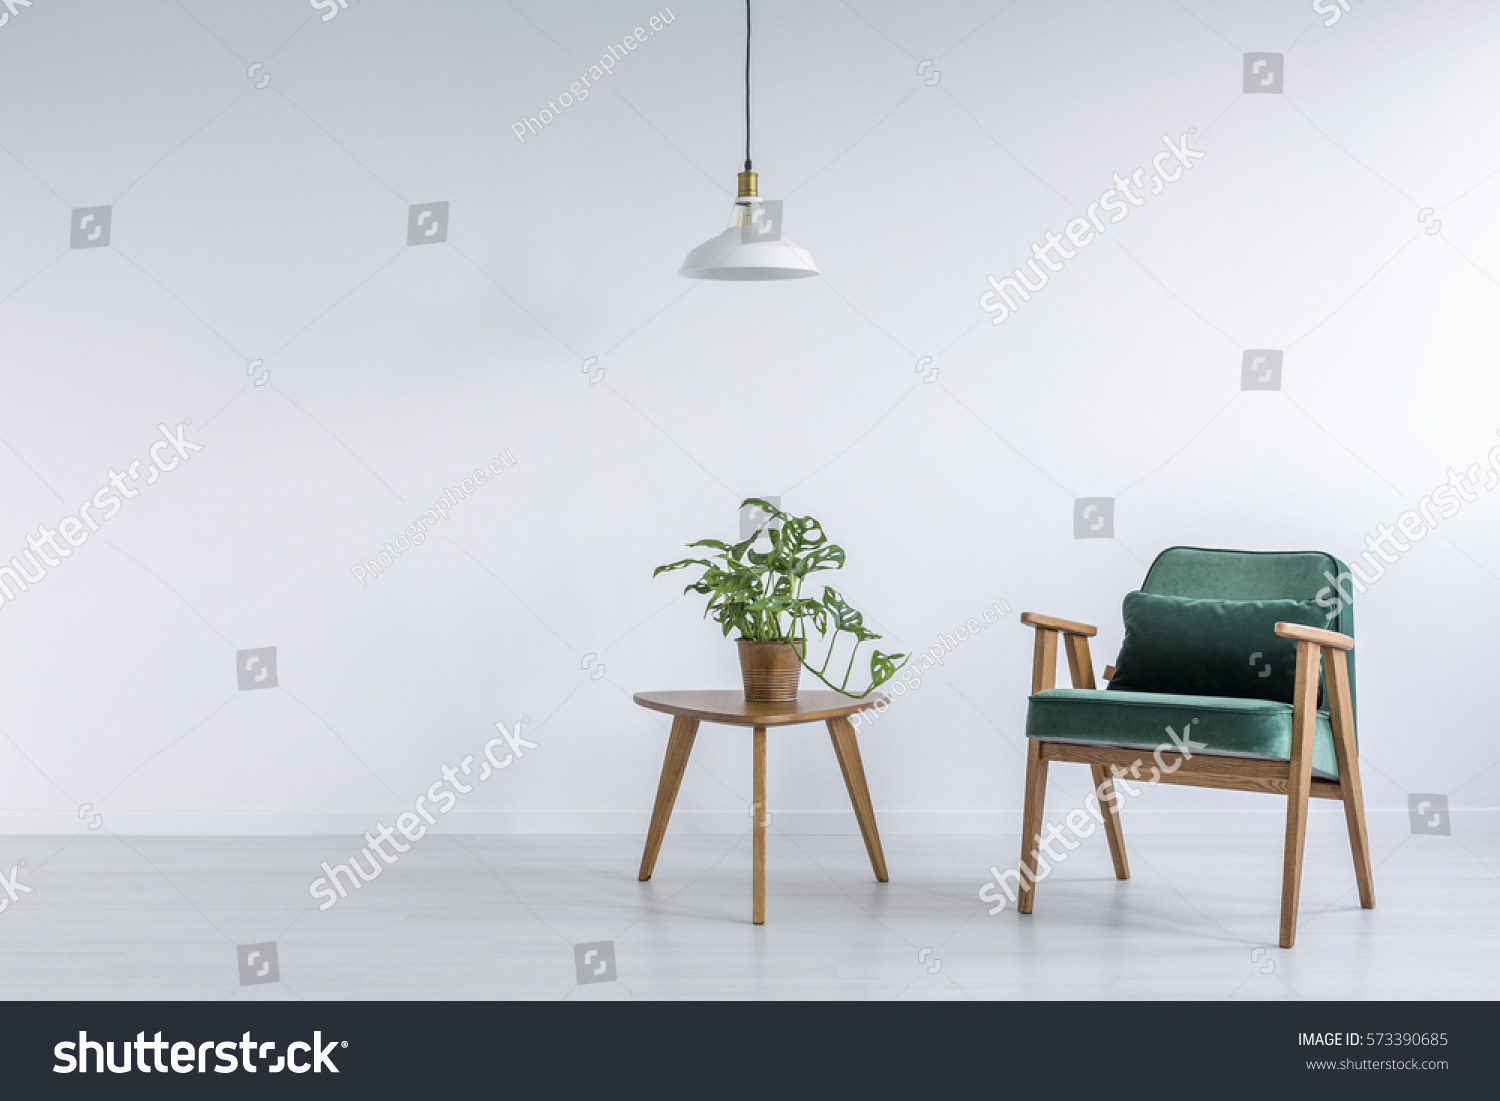 White room green armchair small table stock photo for Small white armchair